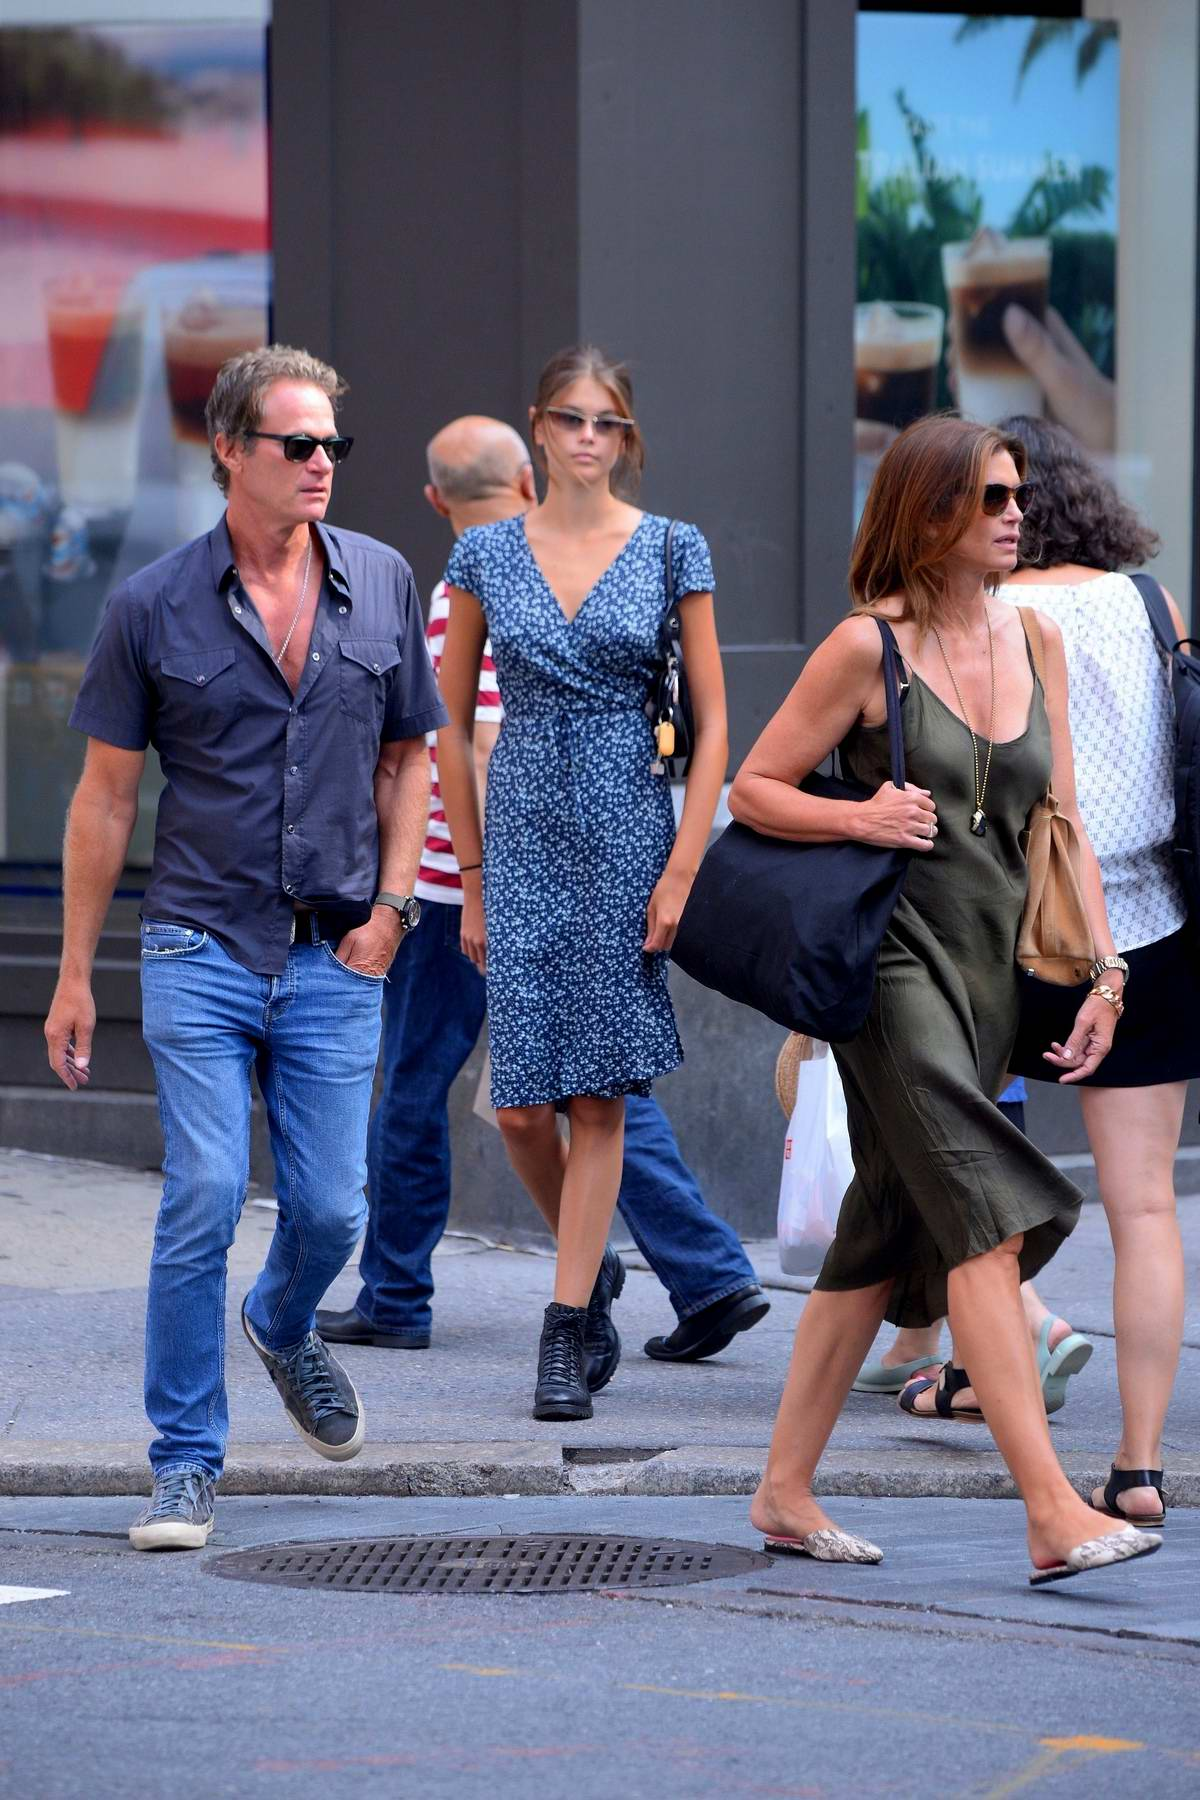 Kaia Gerber steps out for a stroll with her parents Cindy Crawford and Rande Gerber in New York City